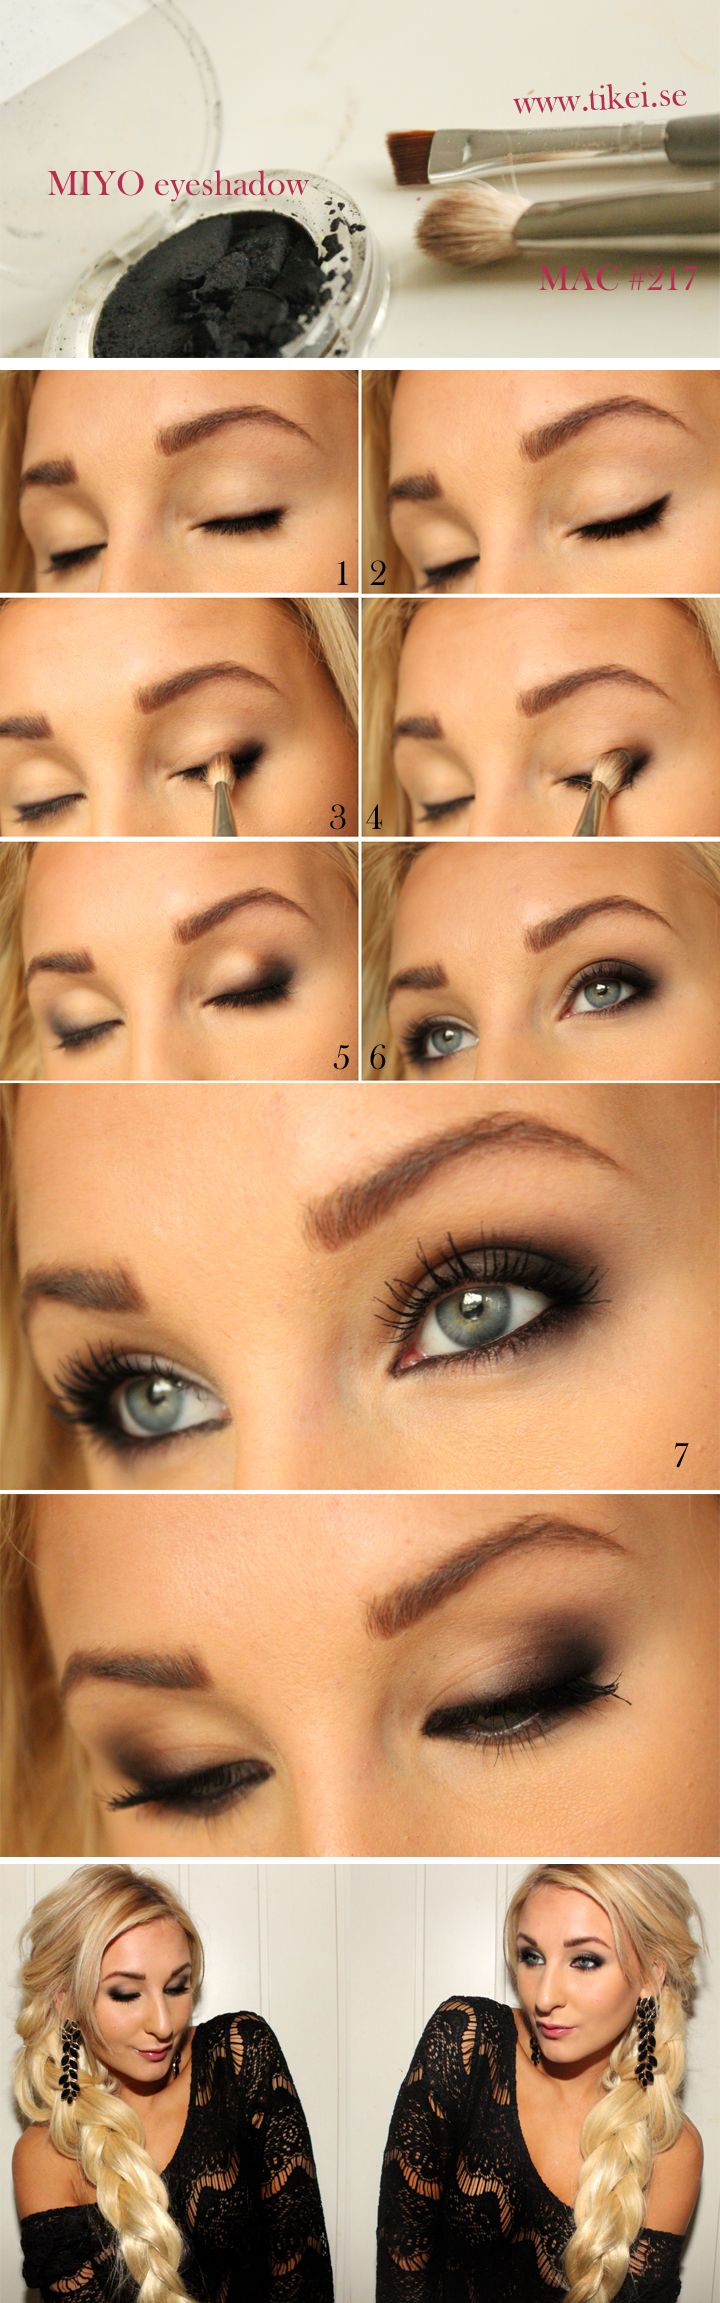 Oh I like this simmered down smokey eye